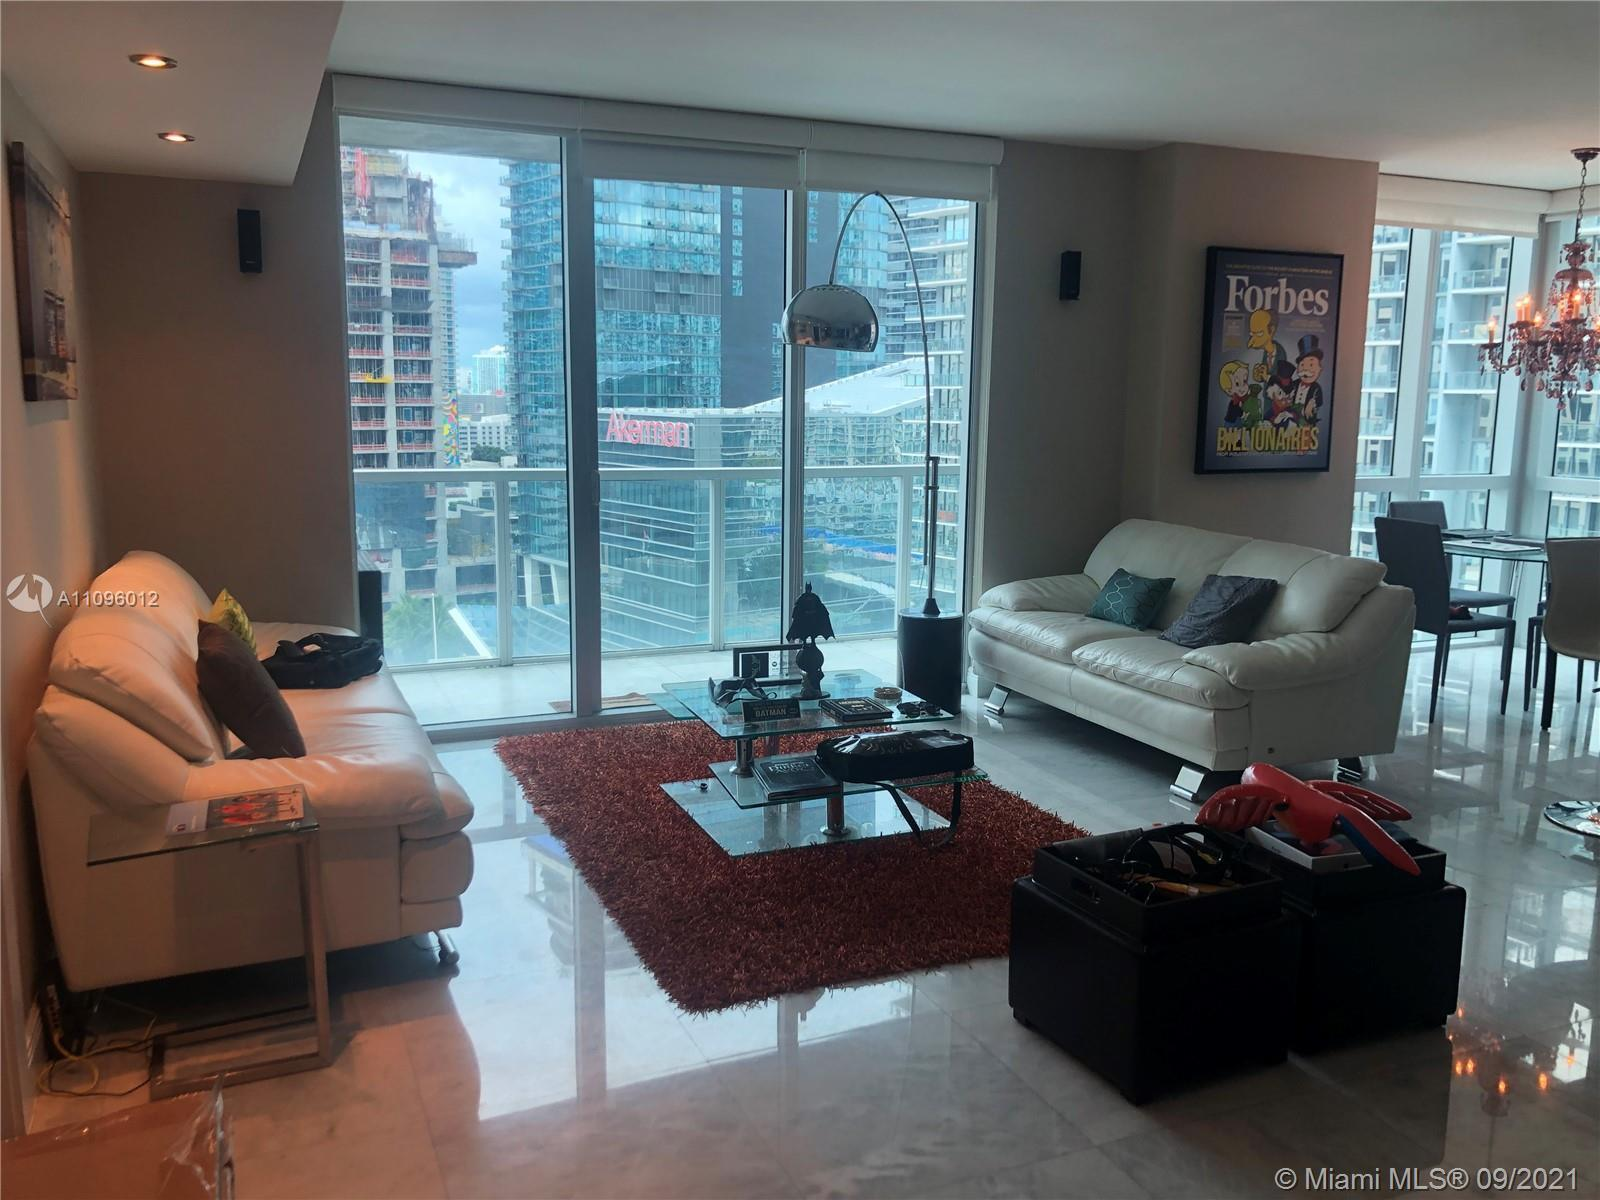 Spectacular Corner Unit located in the Heart of Brickell Living! Incredible Views of the Miami Brick